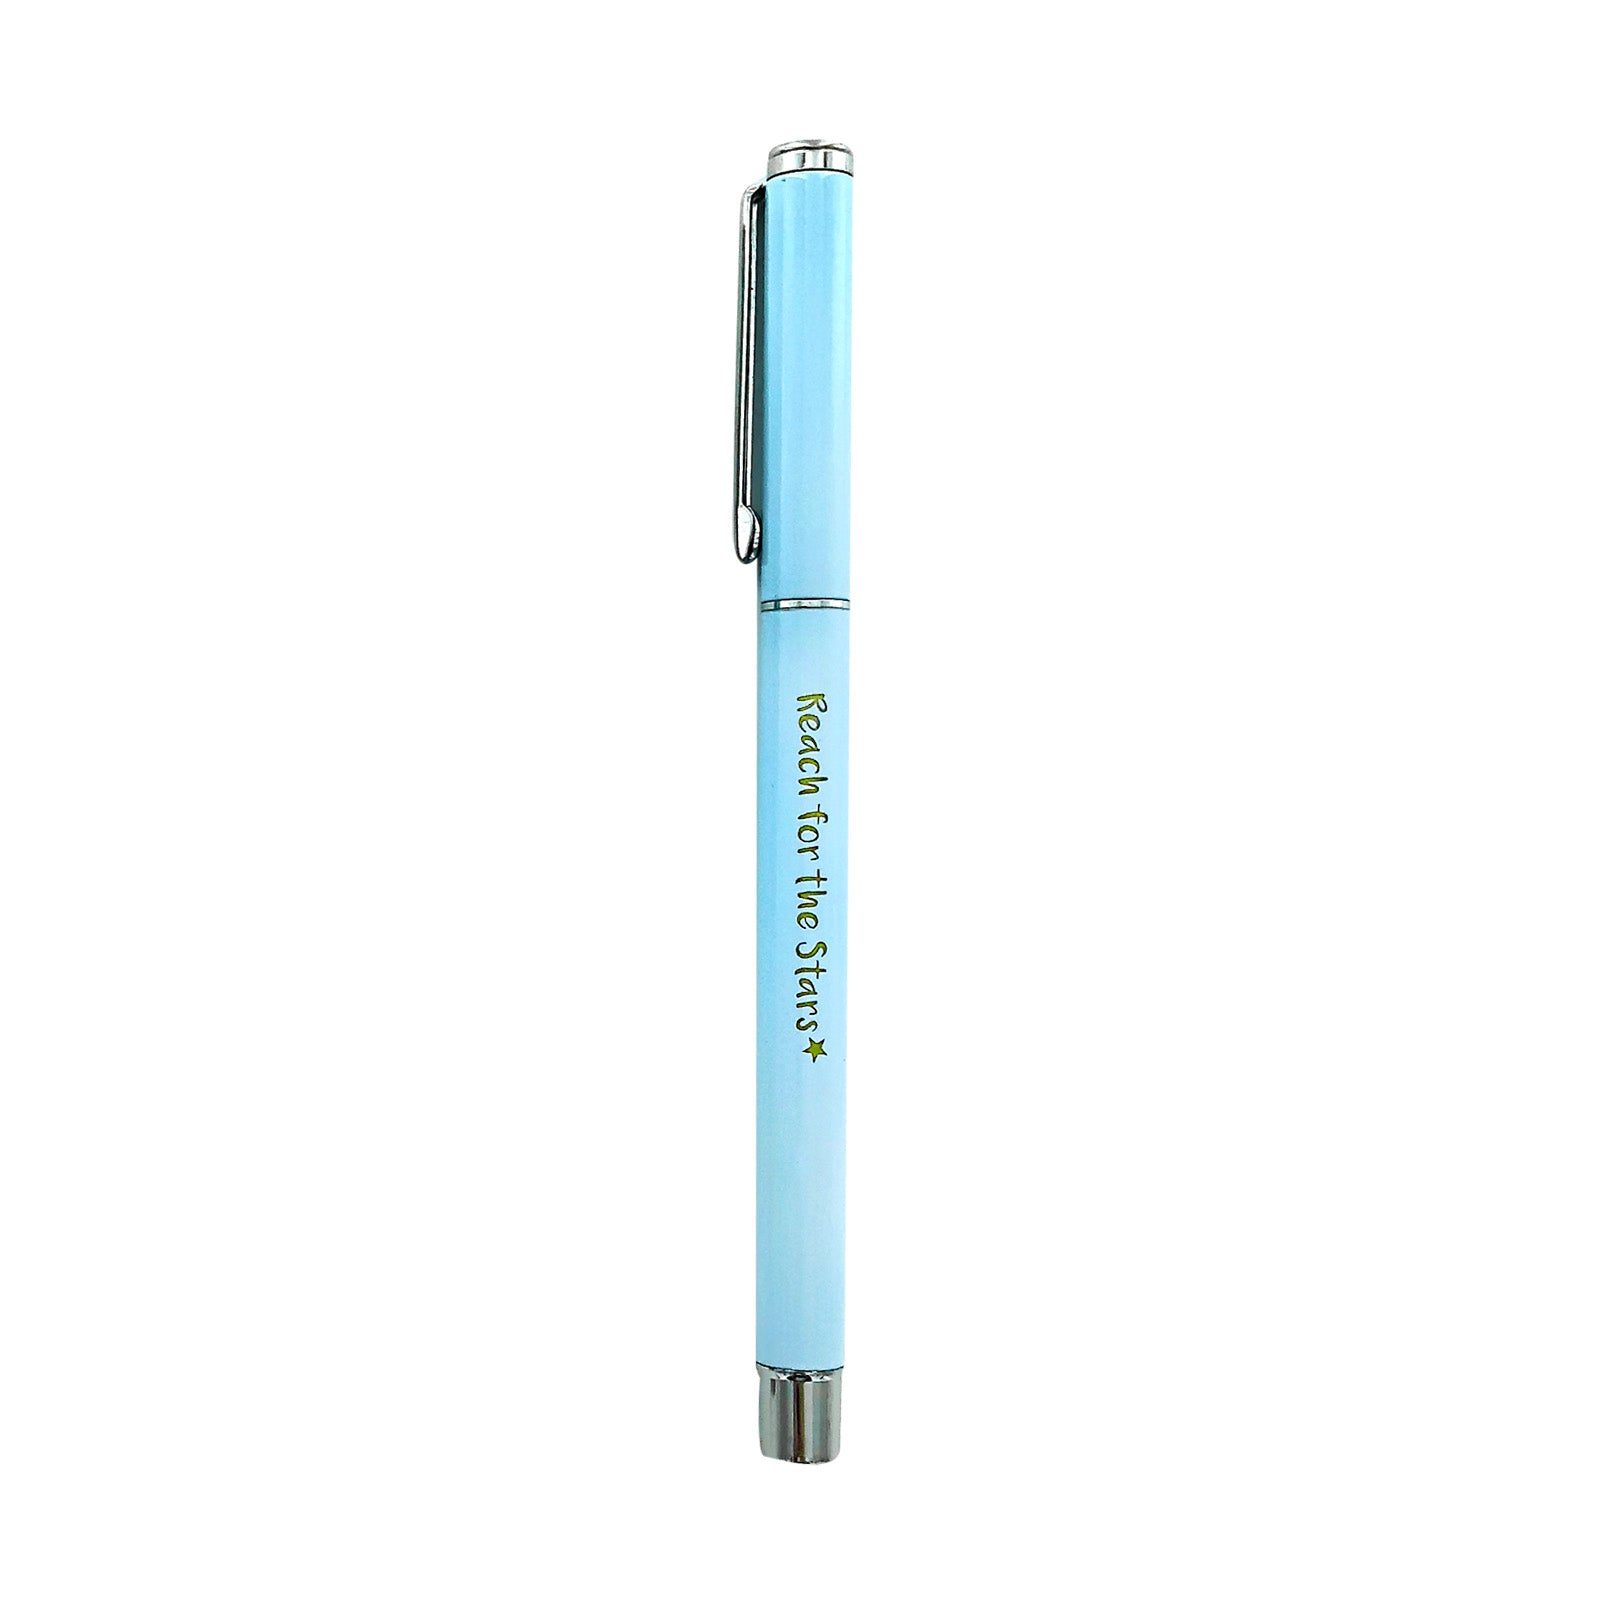 Metal Pen - Reach For The Stars - Light Blue